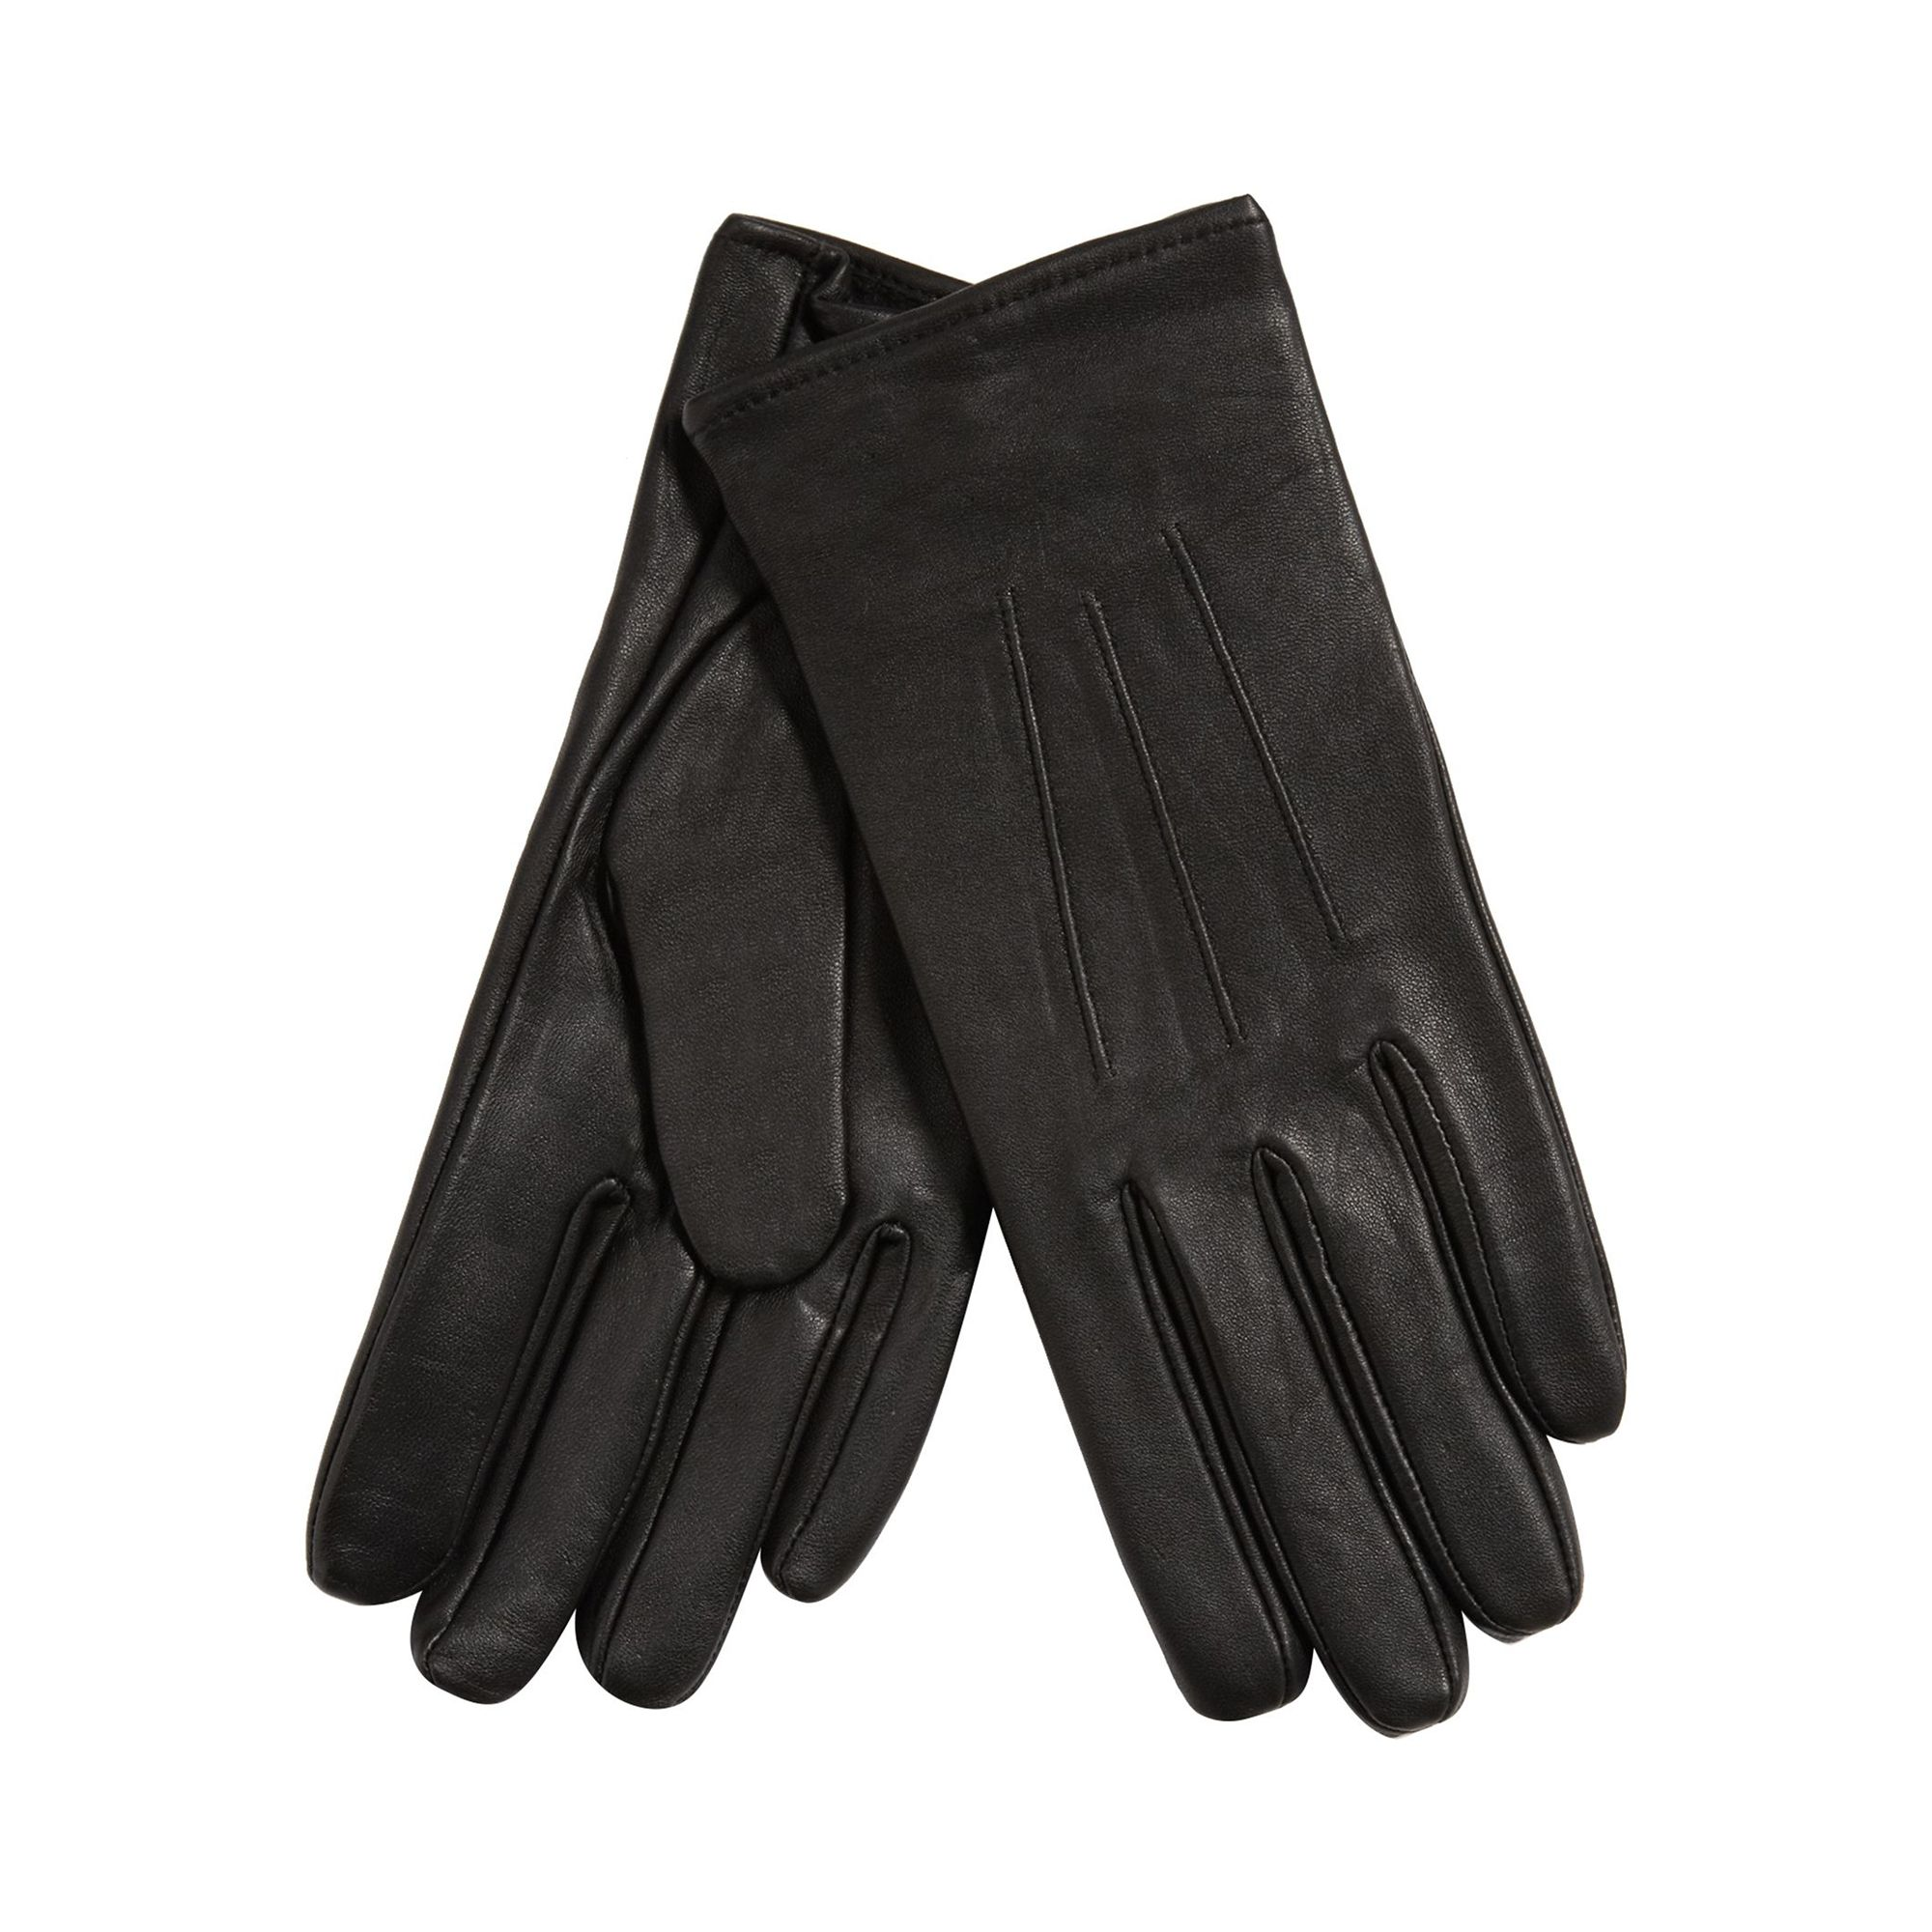 Driving gloves debenhams - Free Delivery On Orders Over 40 When You Add To Basket At The Top Of The Page